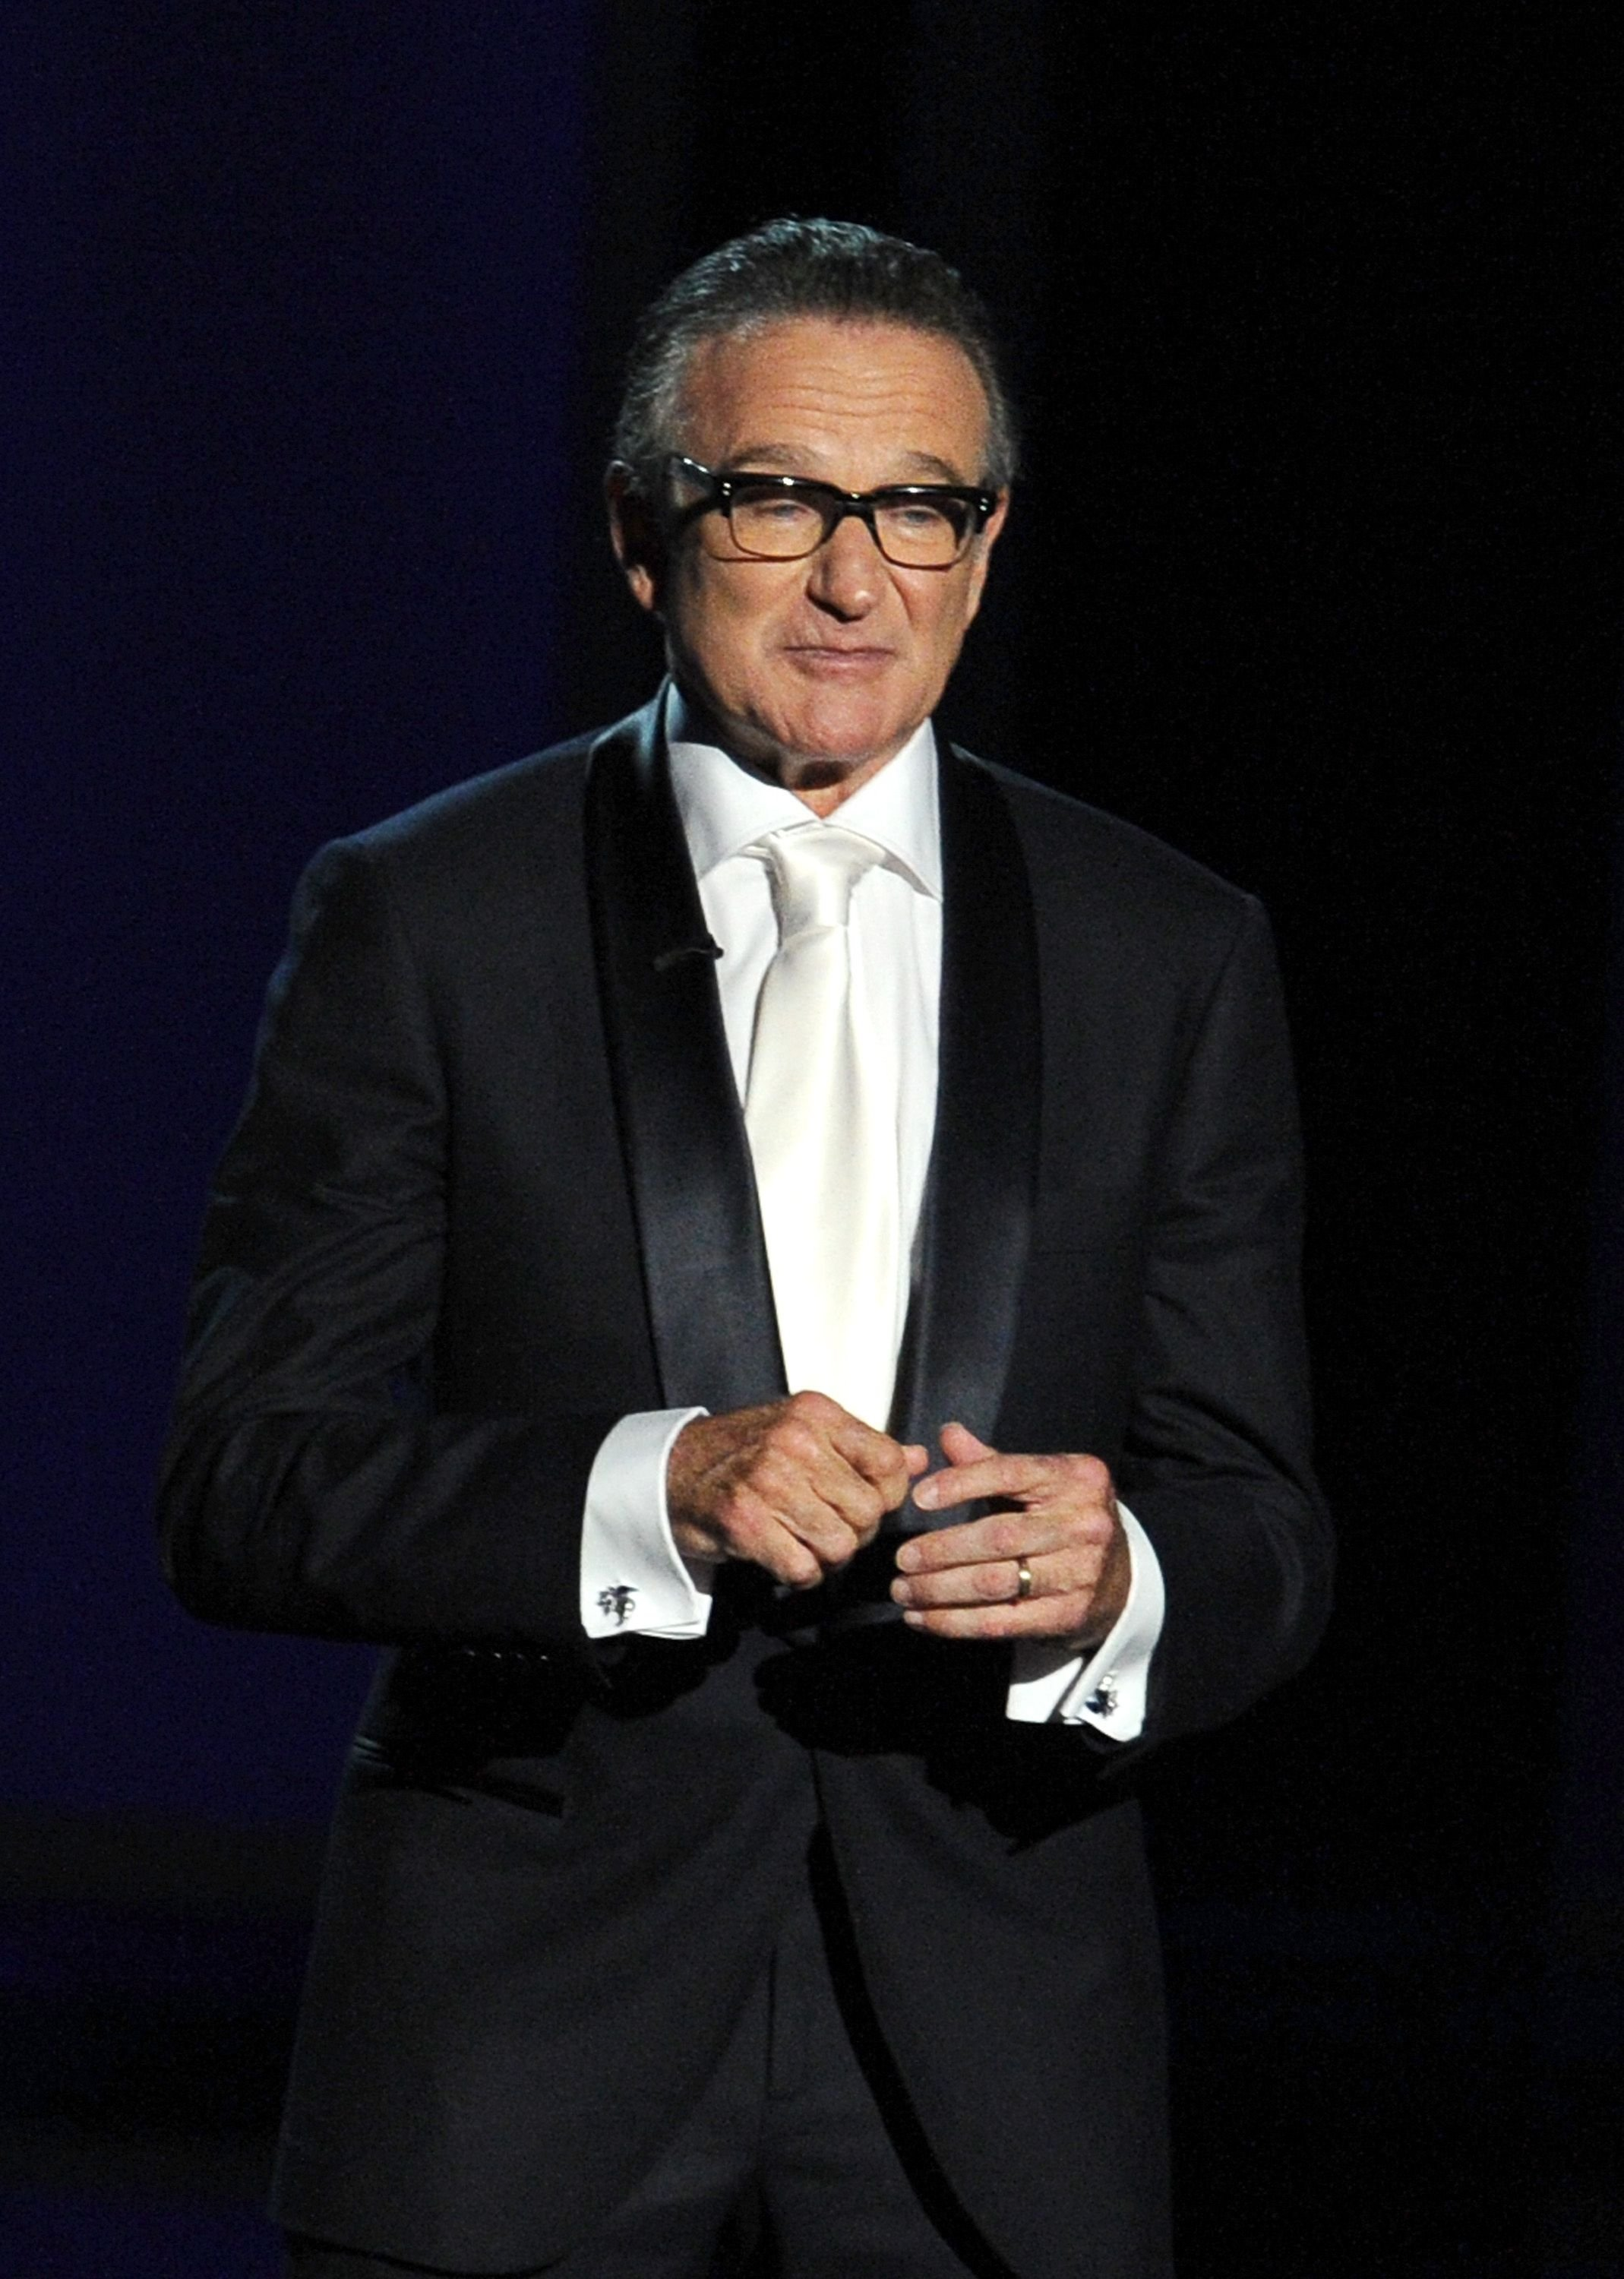 Late Actor Robin Williams spoke at the 65th Annual Primetime Emmy Awards held at Nokia Theatre L.A. Live on September 22, 2013 | Photo: Getty Images